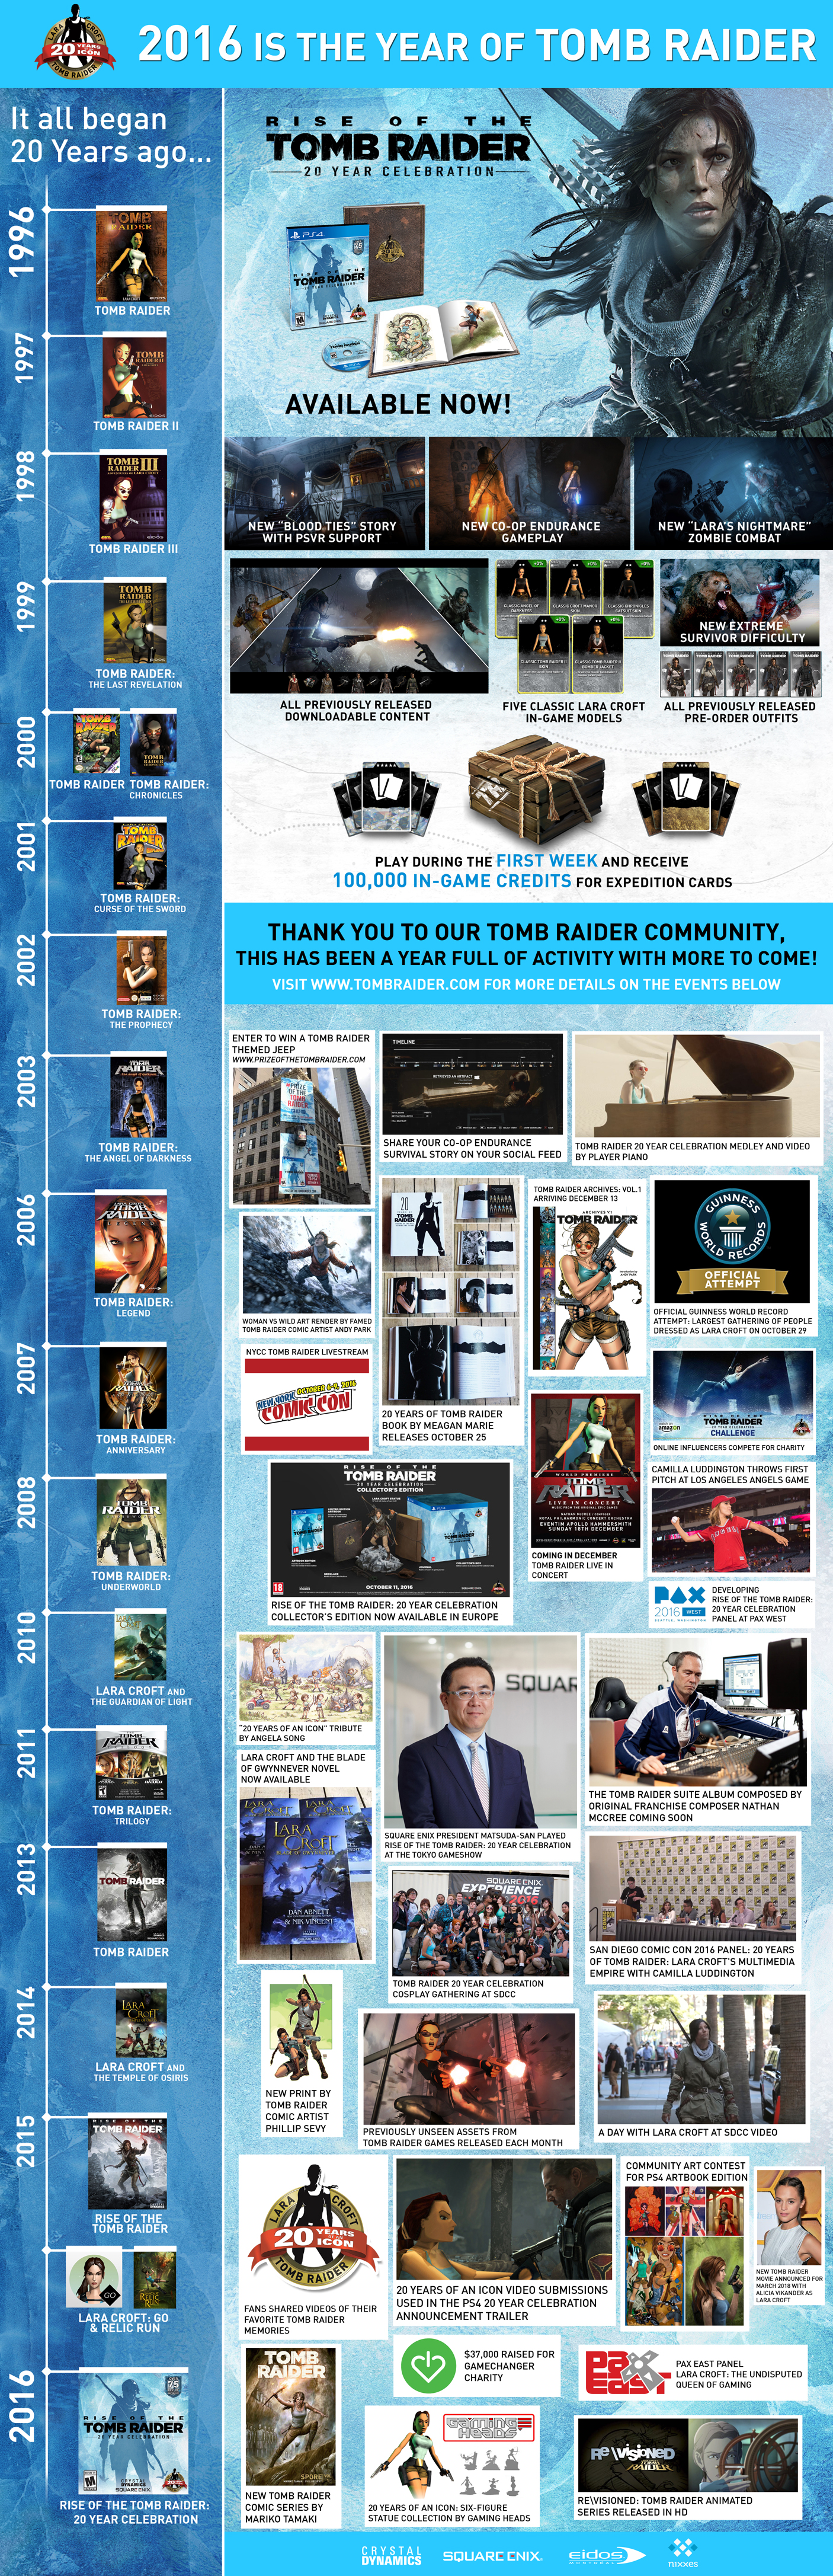 rottr20_celebration_timeline_launch_blog